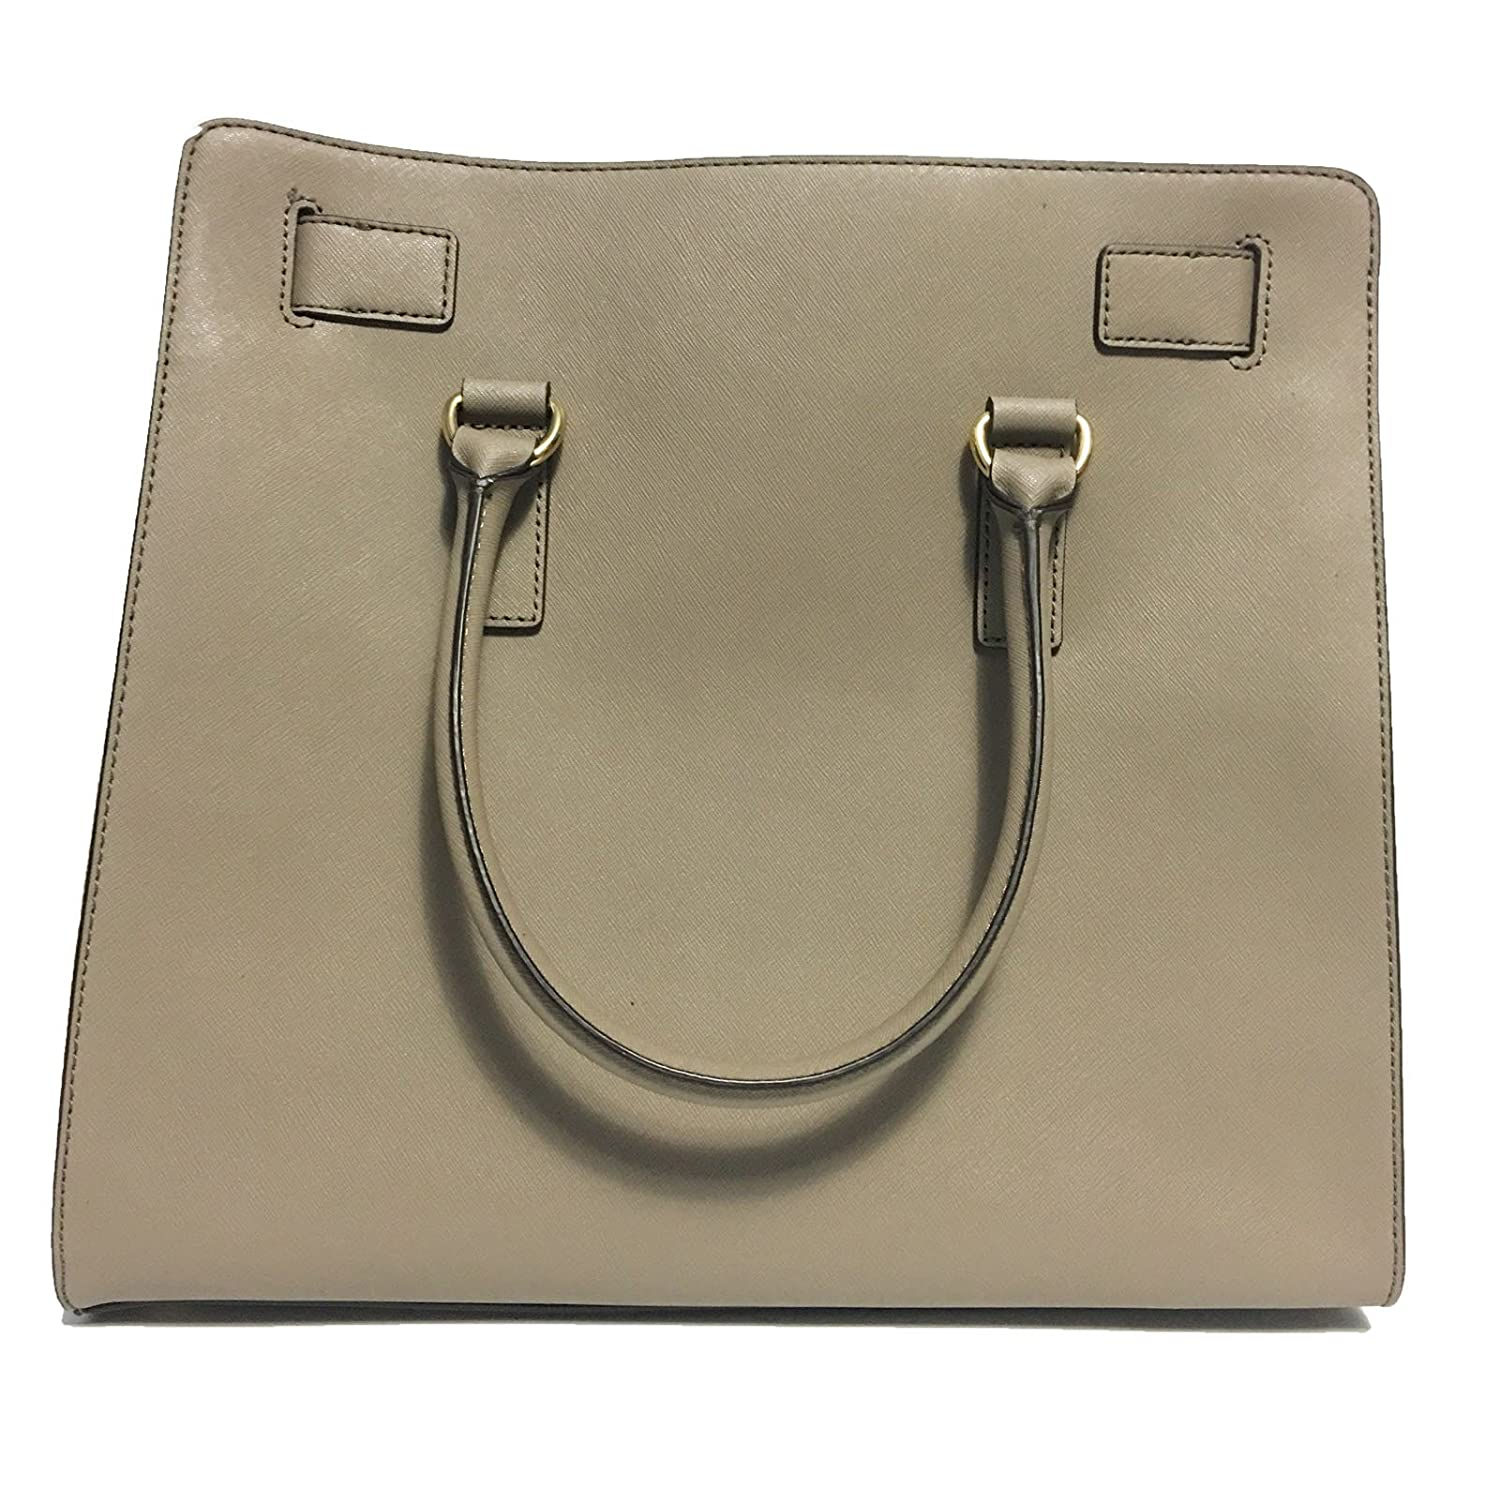 Amazon.com  MICHAEL Michael Kors Hamilton North South Tote (Dark Taupe)   Shoes 00758209a4f